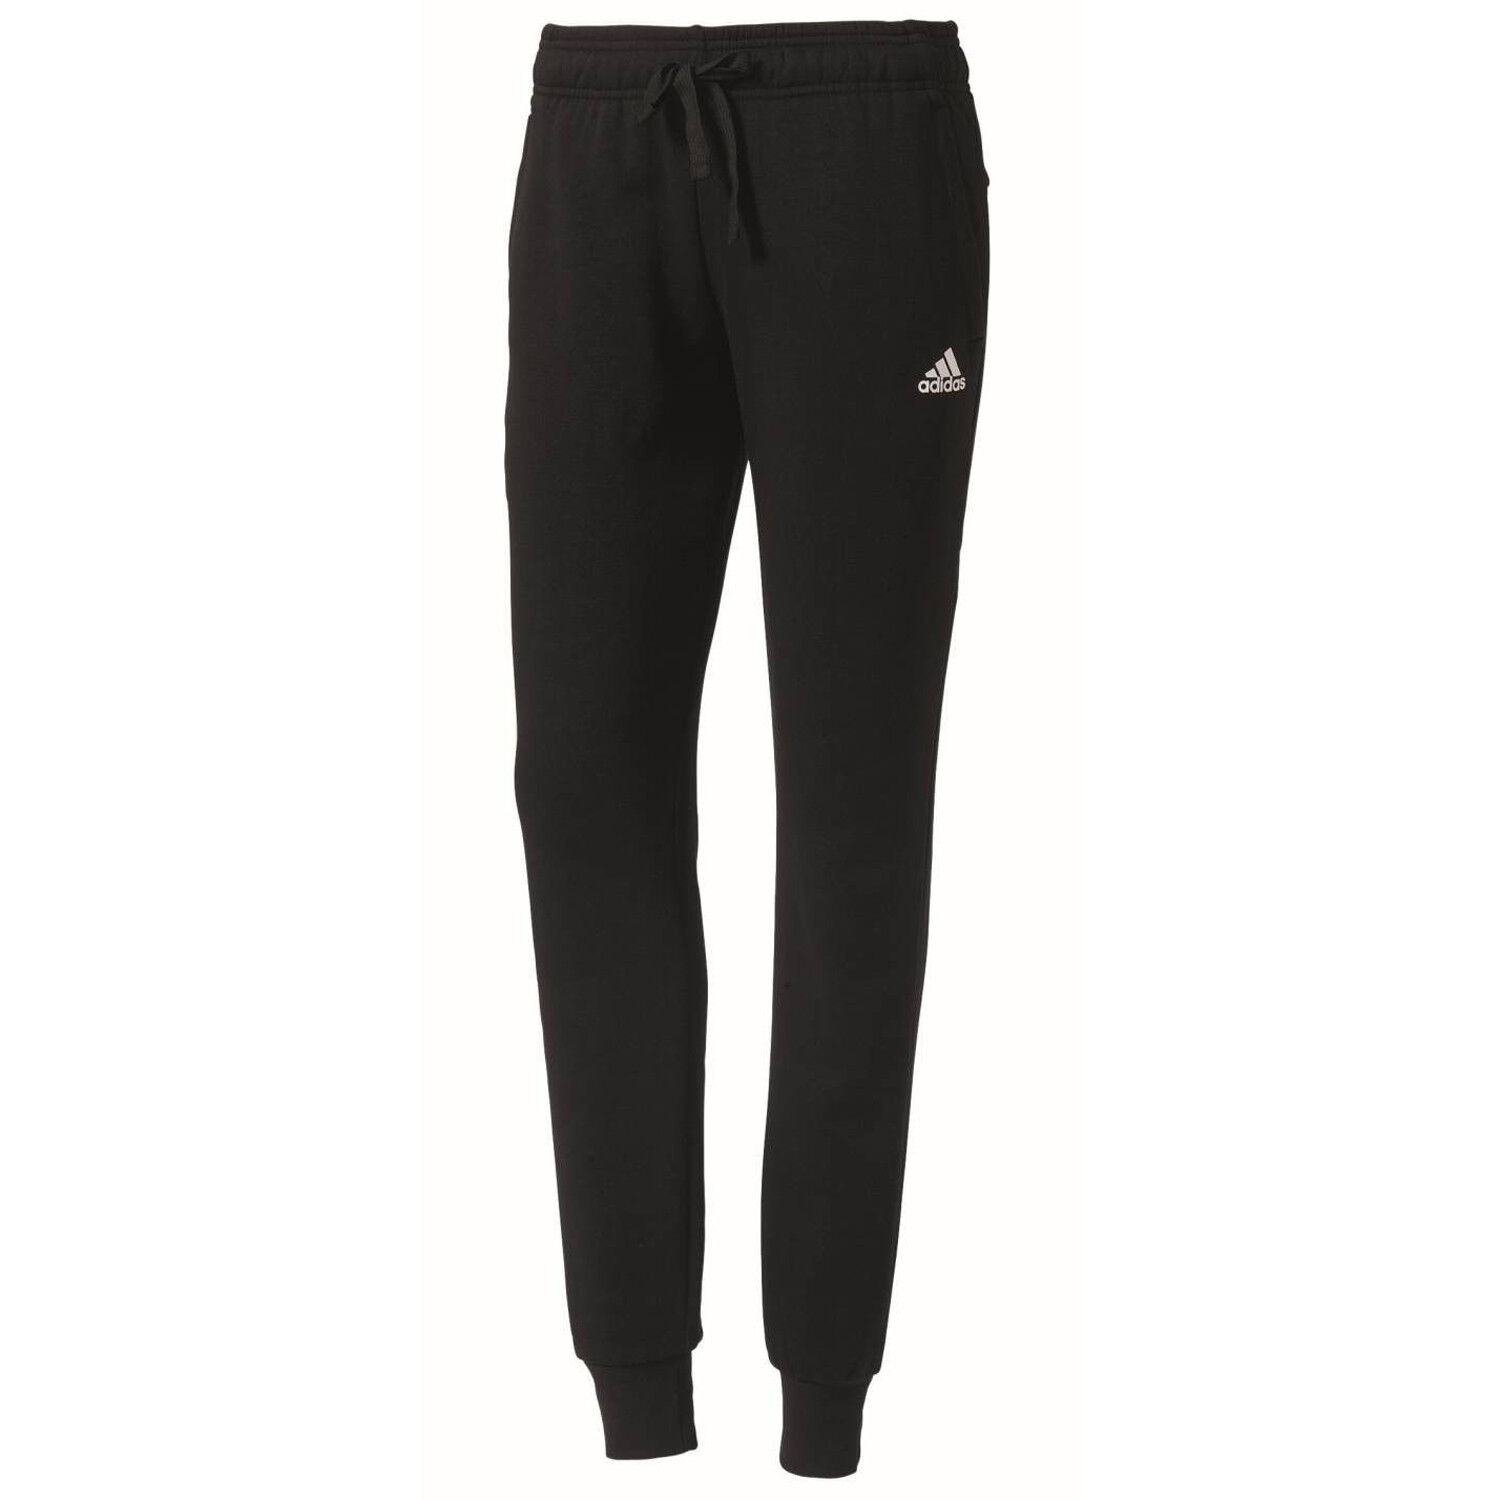 71c6bb34781945 adidas Essentials Solid Hose Damen Jogginghose Fitness Sweatpant schwarz  S97159